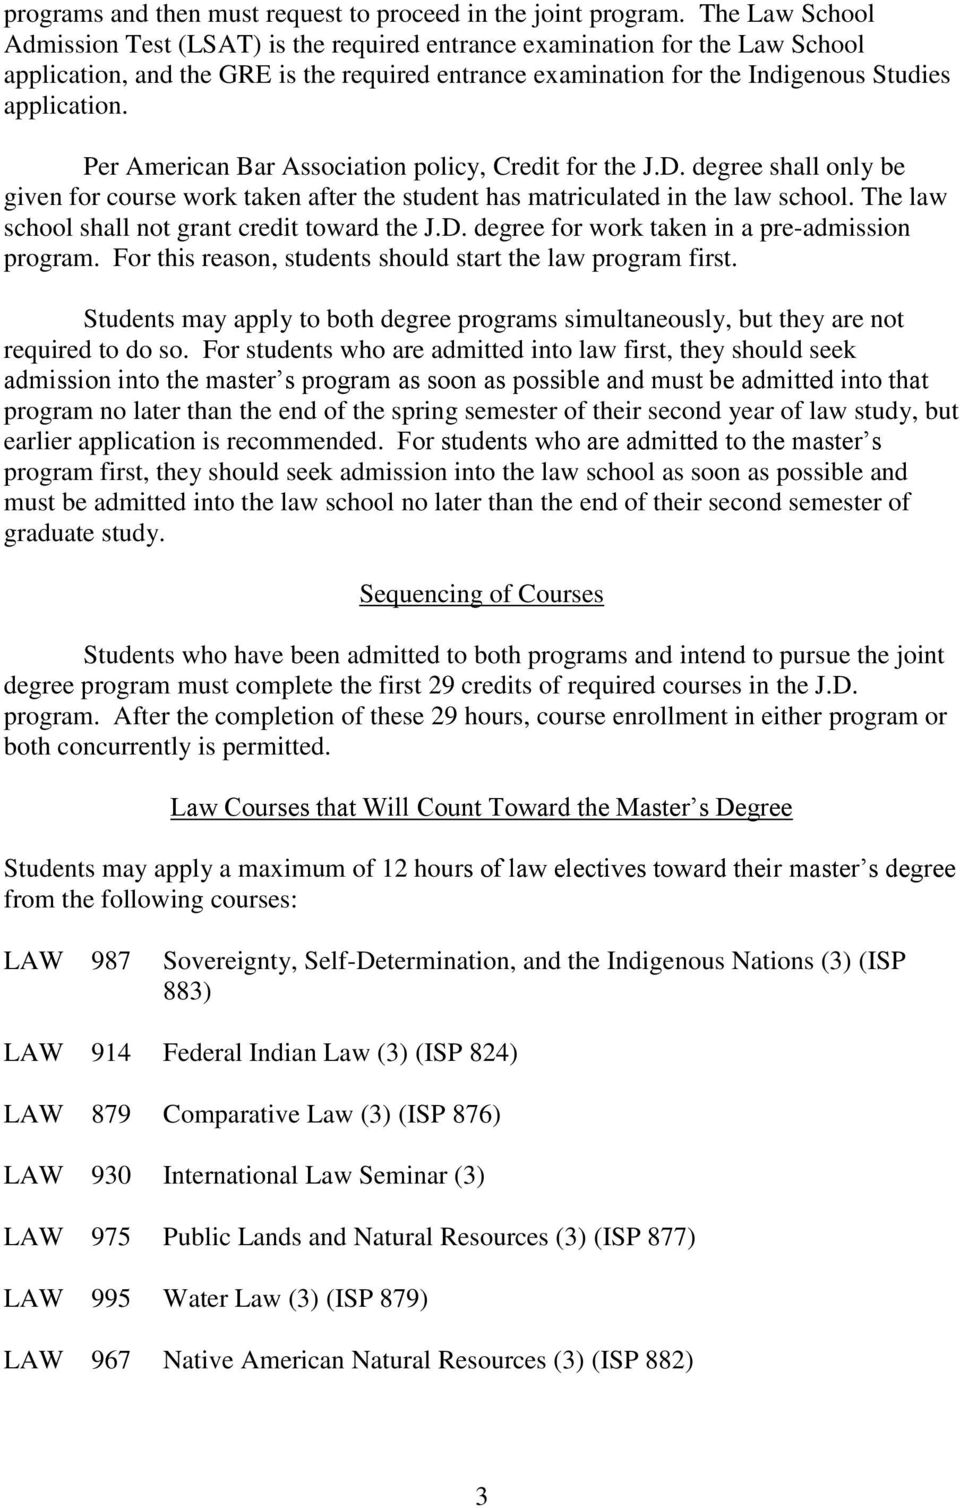 Per American Bar Association policy, Credit for the J.D. degree shall only be given for course work taken after the student has matriculated in the law school.